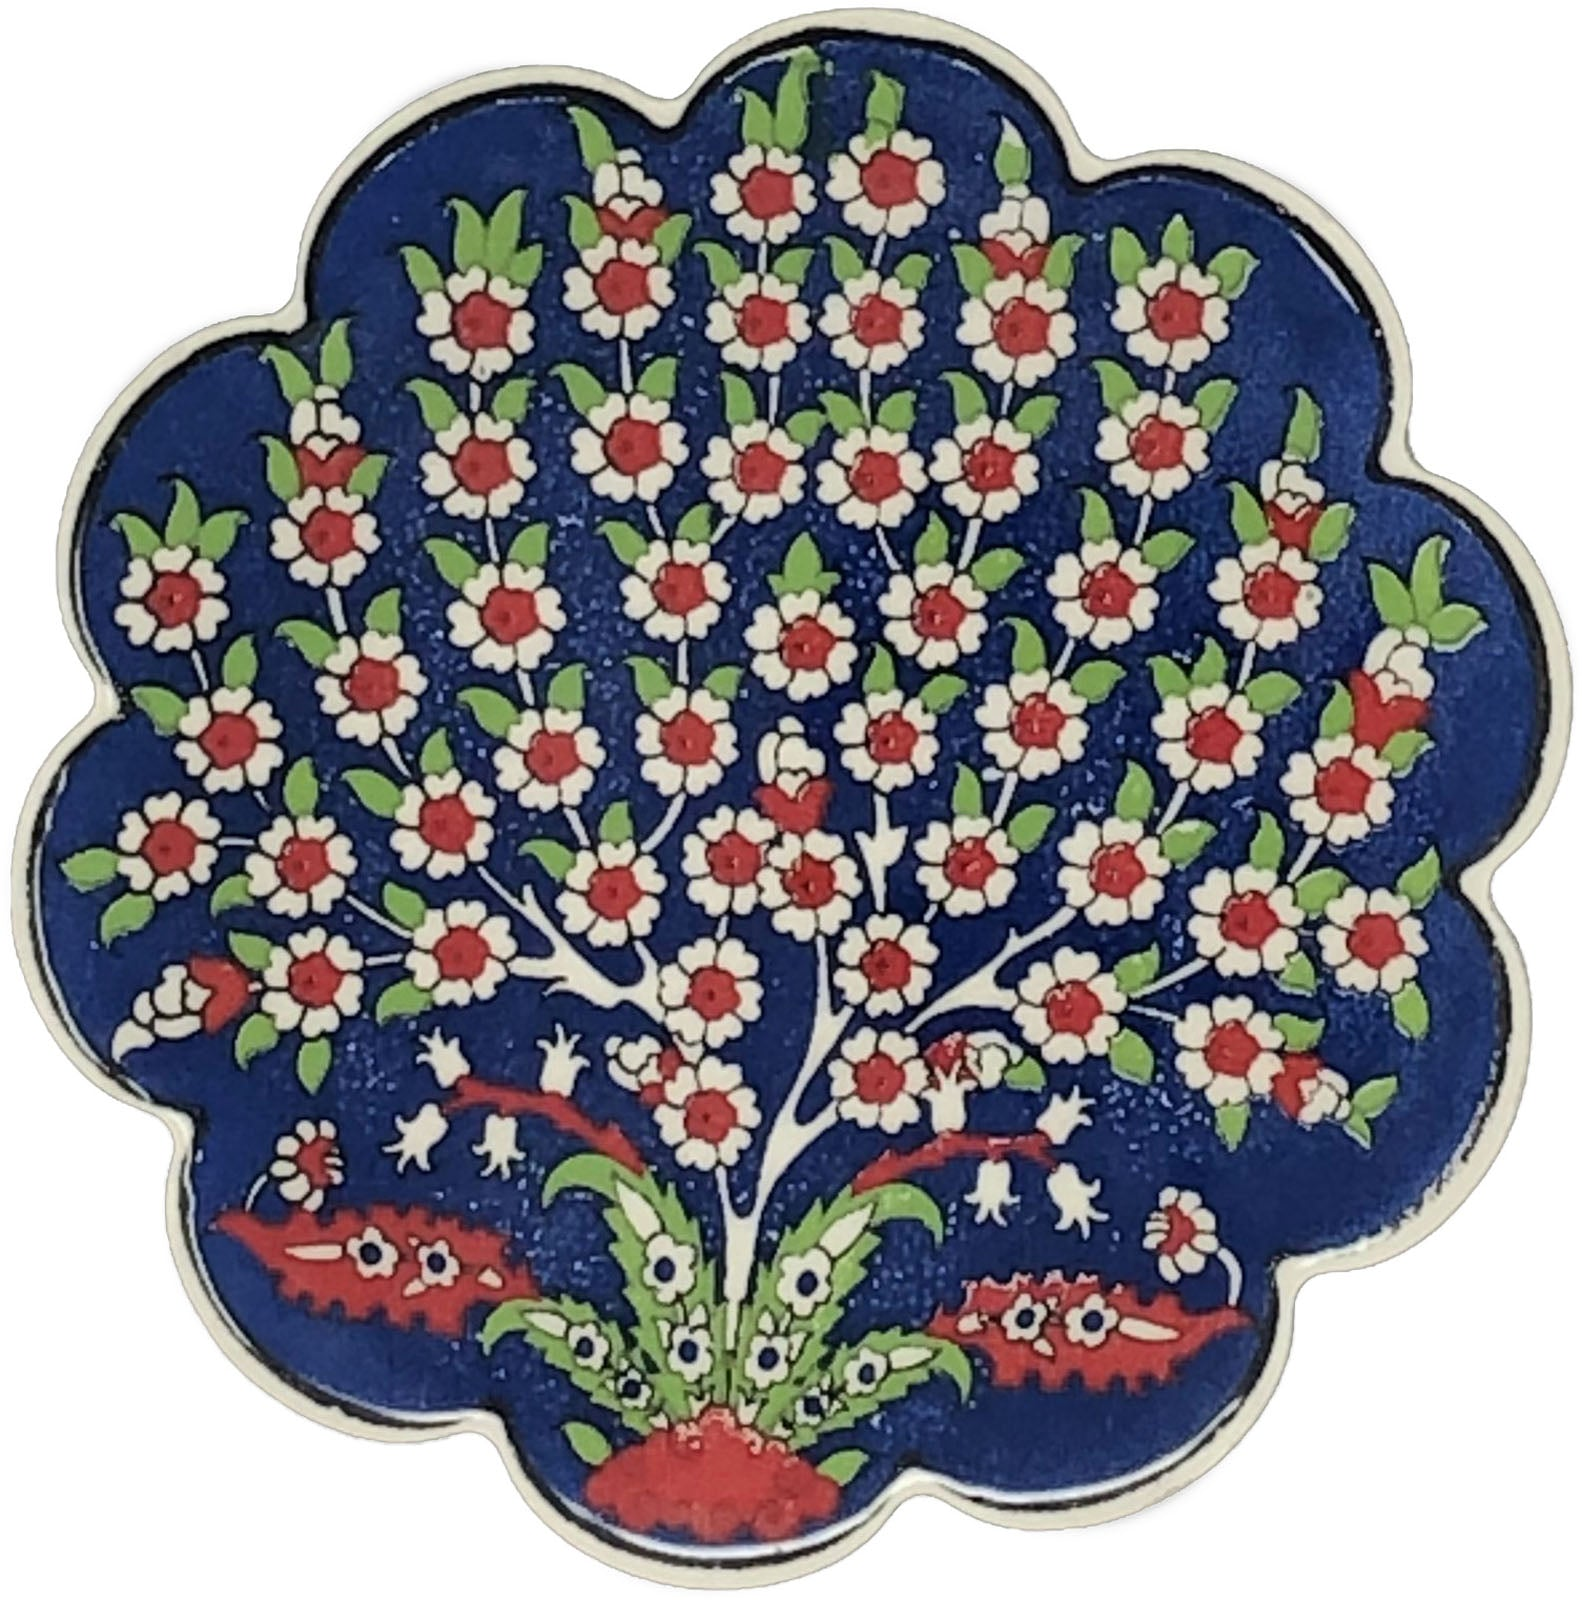 Traditional Turkish 11cm Ceramic Daisy Coaster 014